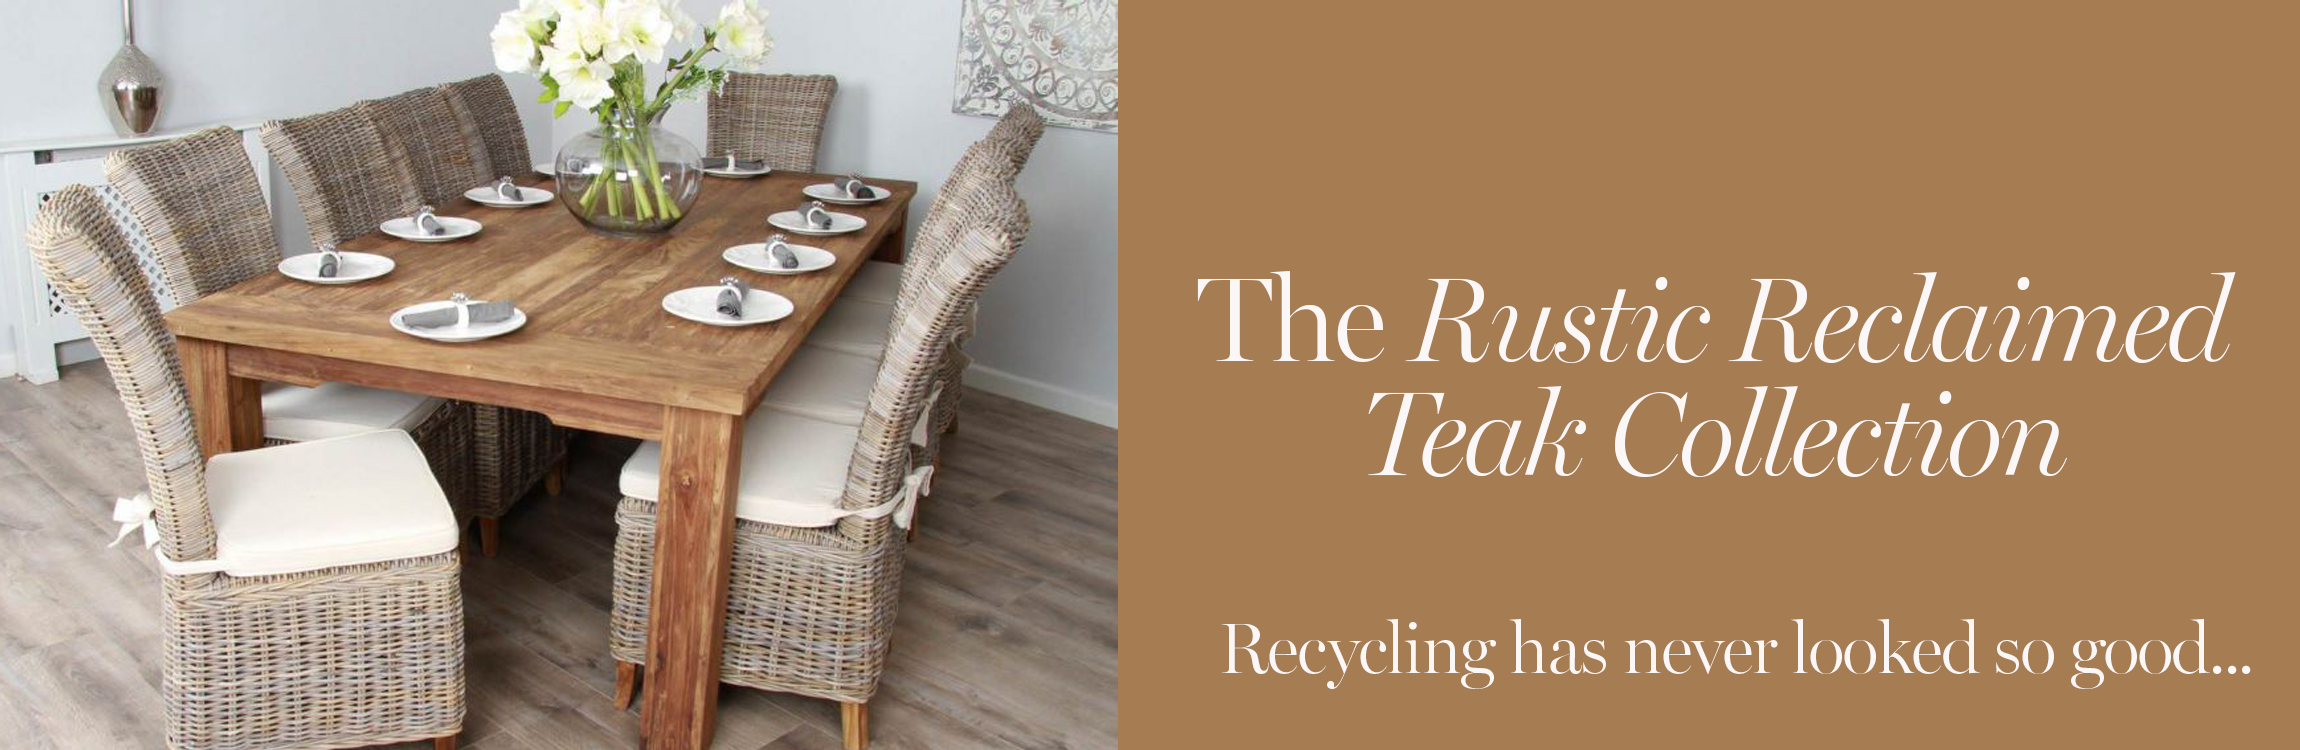 The Rustic Reclaimed Teak Collection